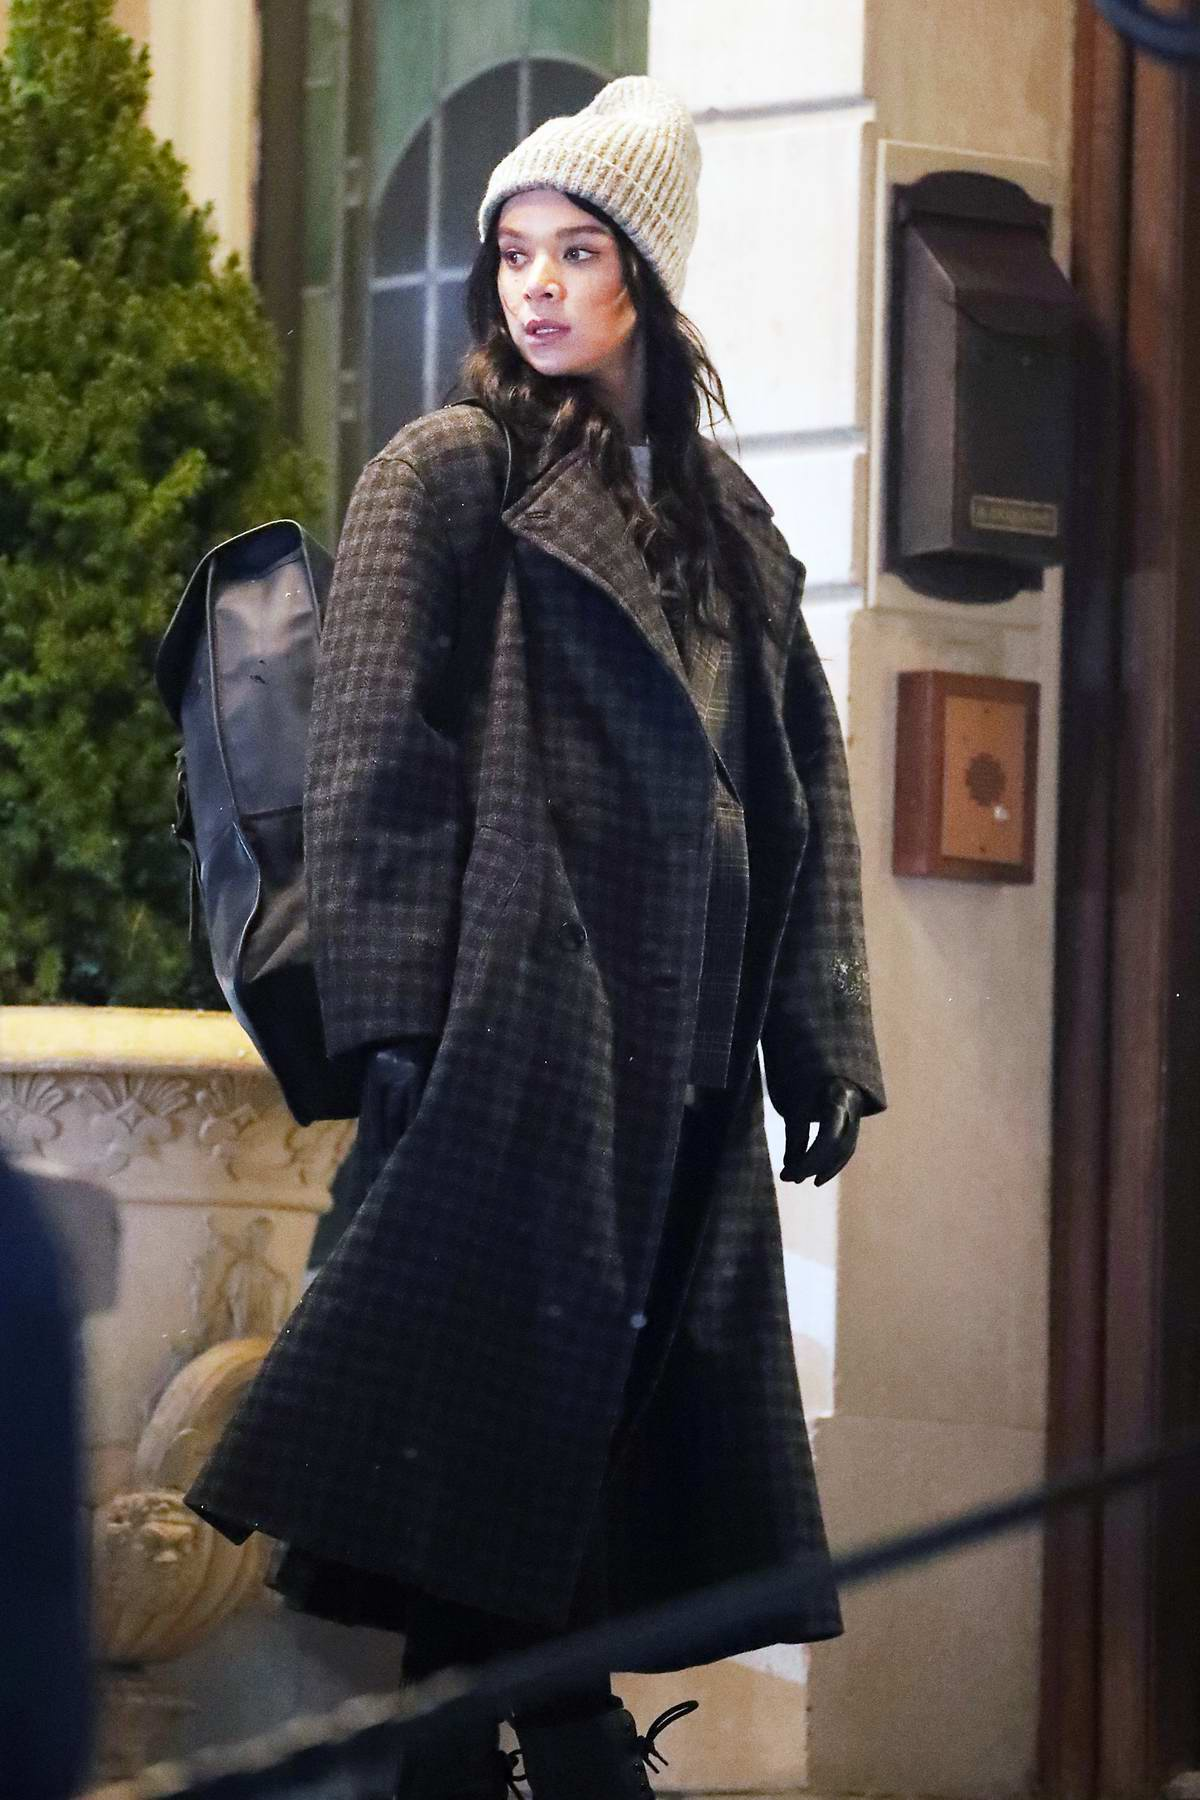 Hailee Steinfeld seen filming a night scene on the set of 'Hawkeye' in New York City